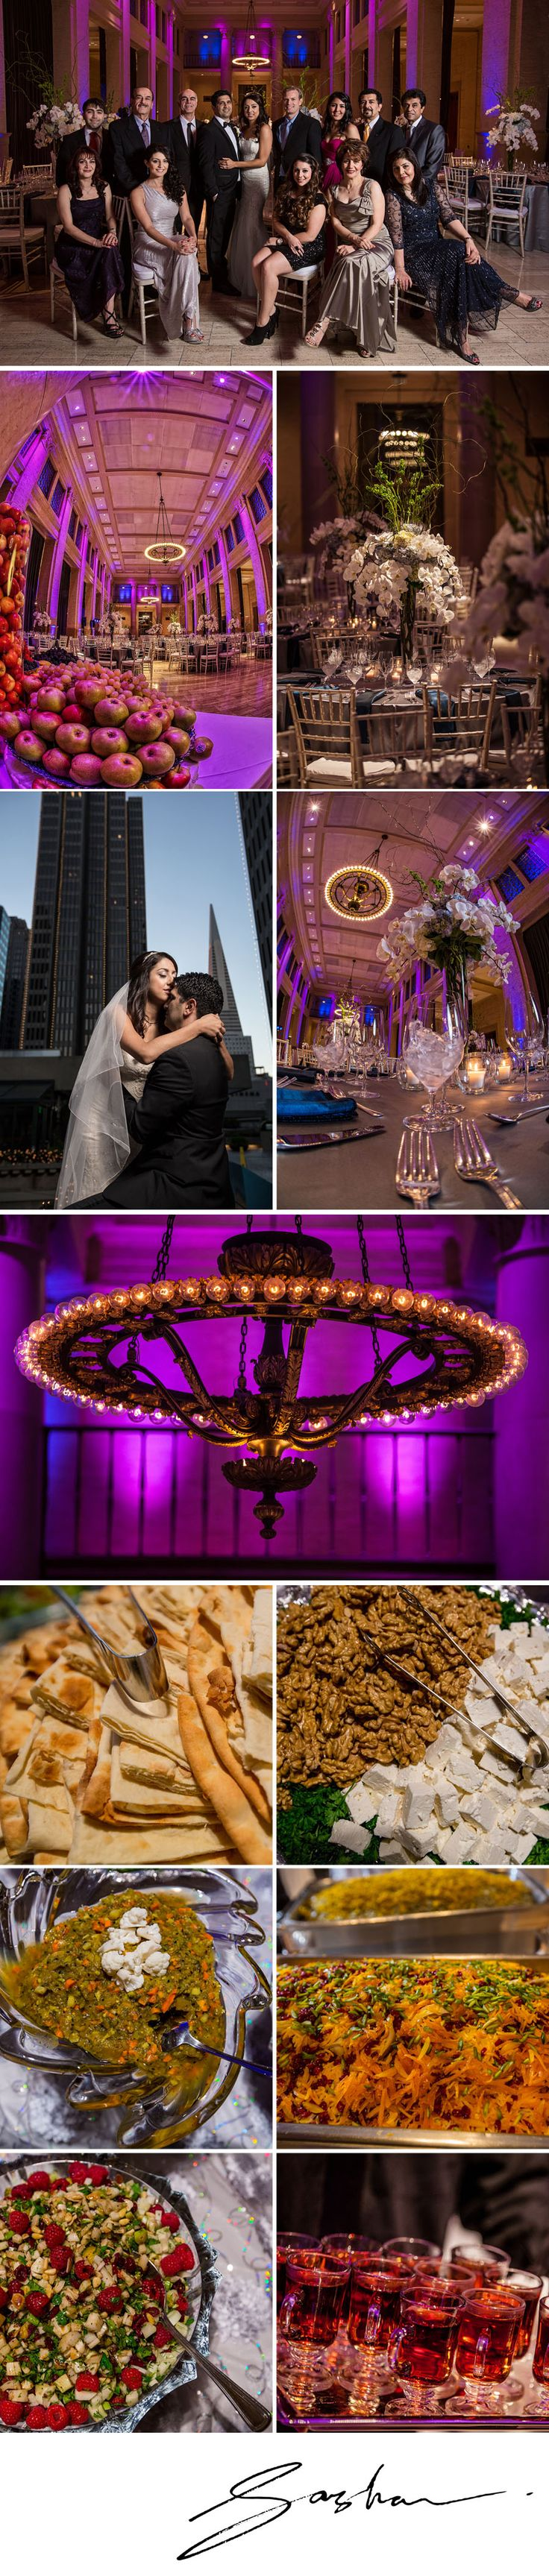 11 best BENTLY RESERVE WEDDINGS images on Pinterest